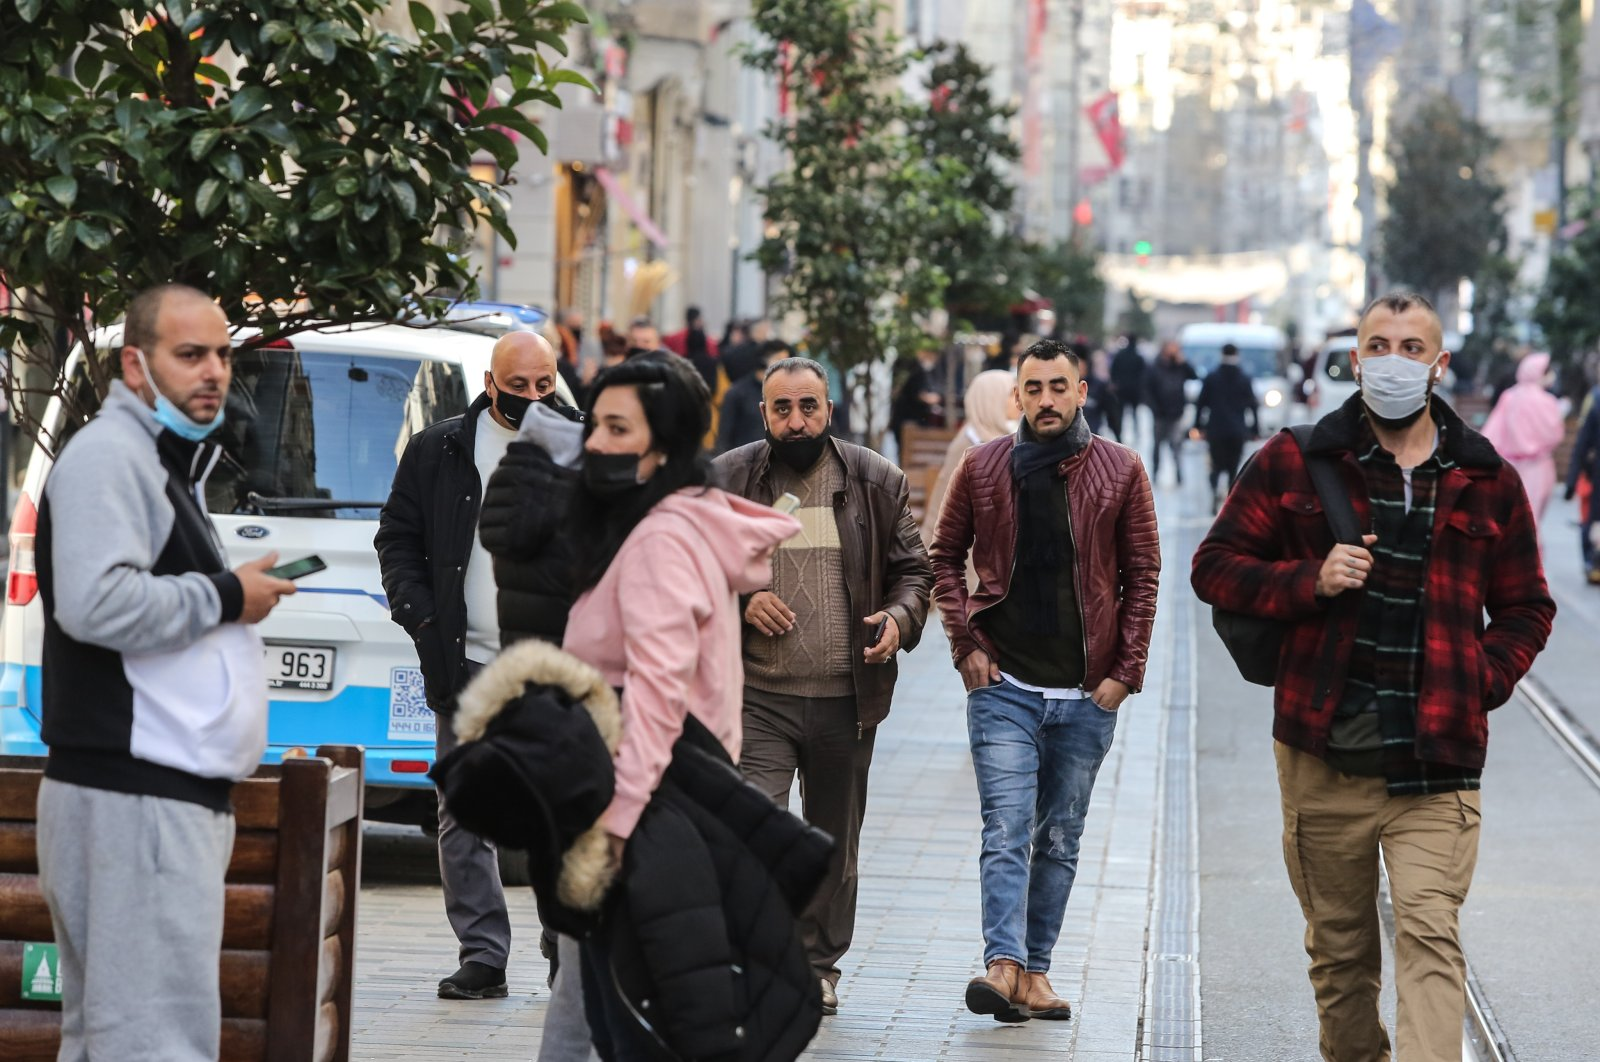 People, some wearing protective masks, walk on Istiklal Avenue, in Istanbul, Turkey, Nov. 27, 2020. (DHA Photo)